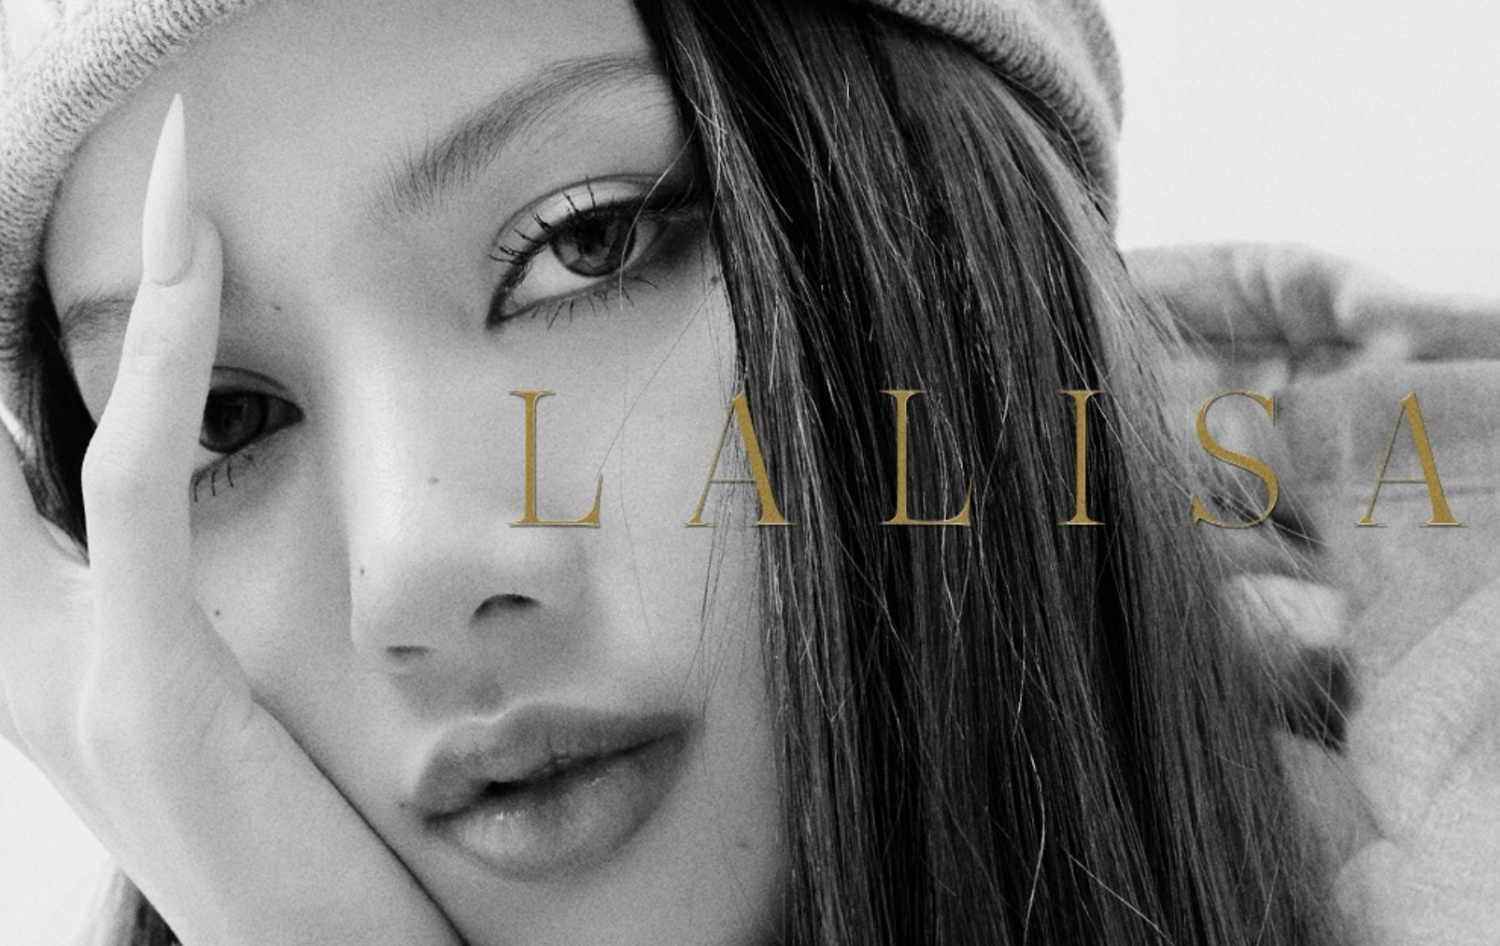 BLACKPINK's Lisa Show Off 'LALISA' Choreography Via Special Stage Video